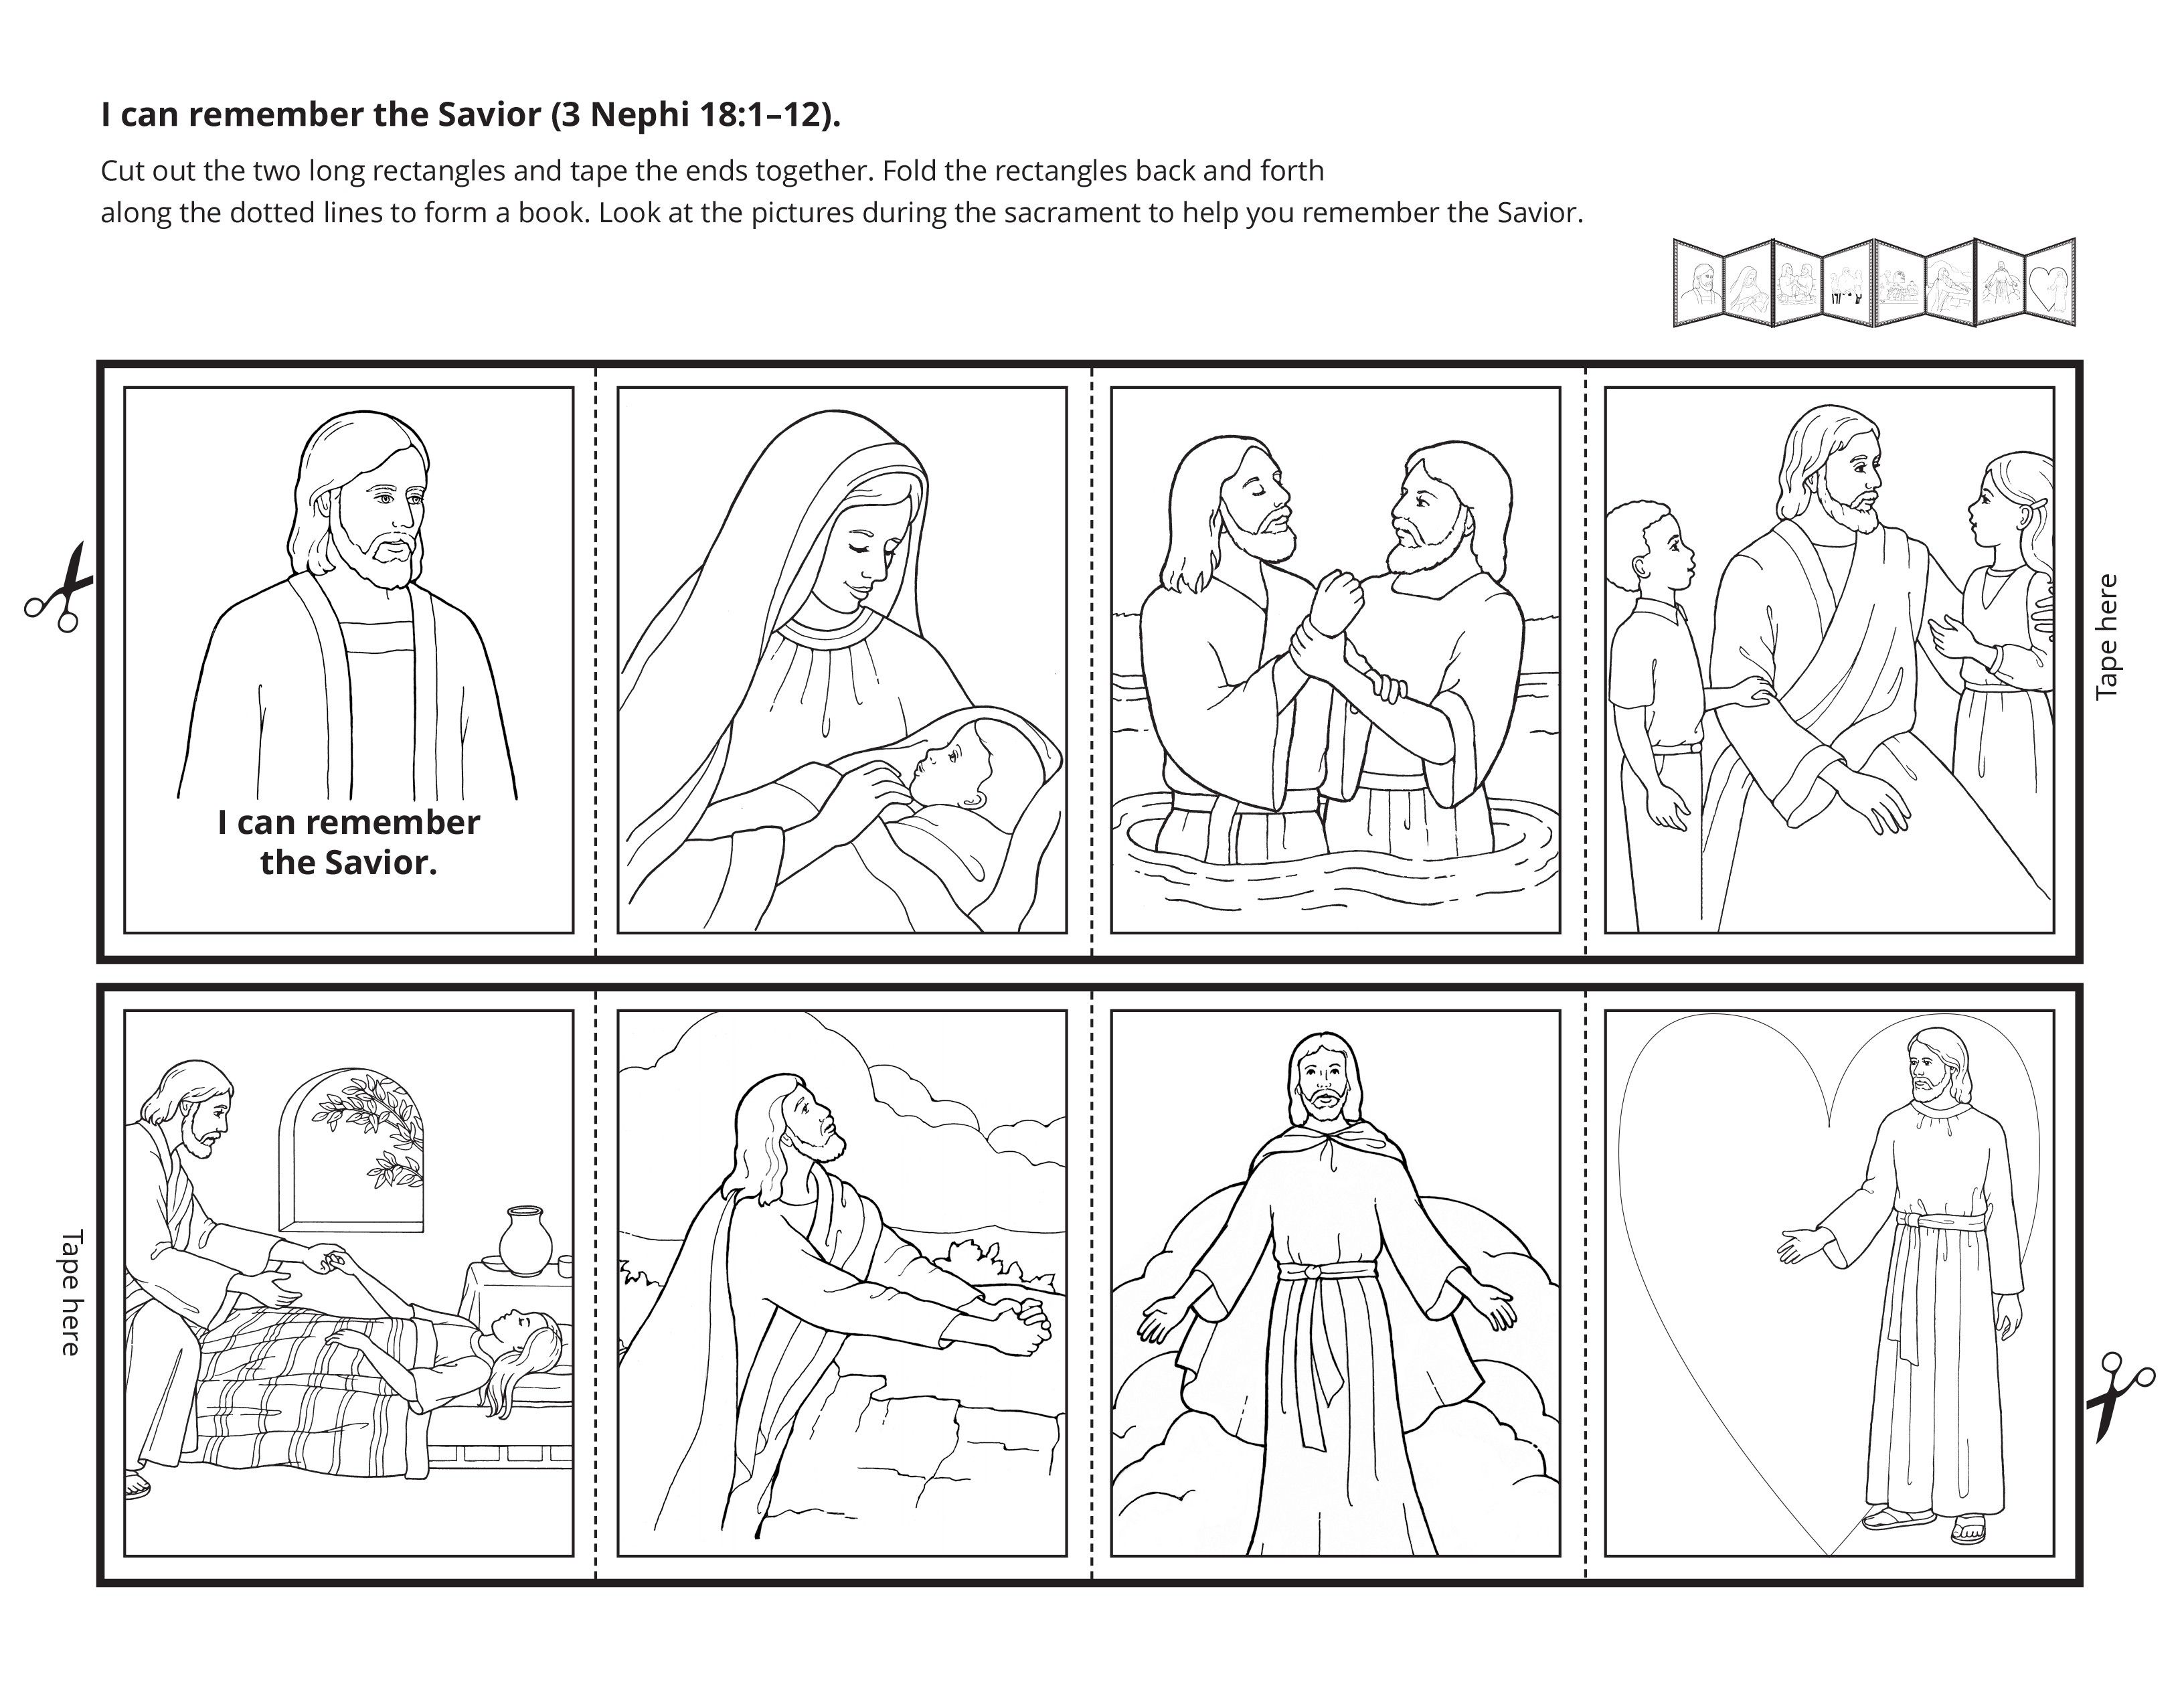 A line-art activity showing ways to remember the Savior.